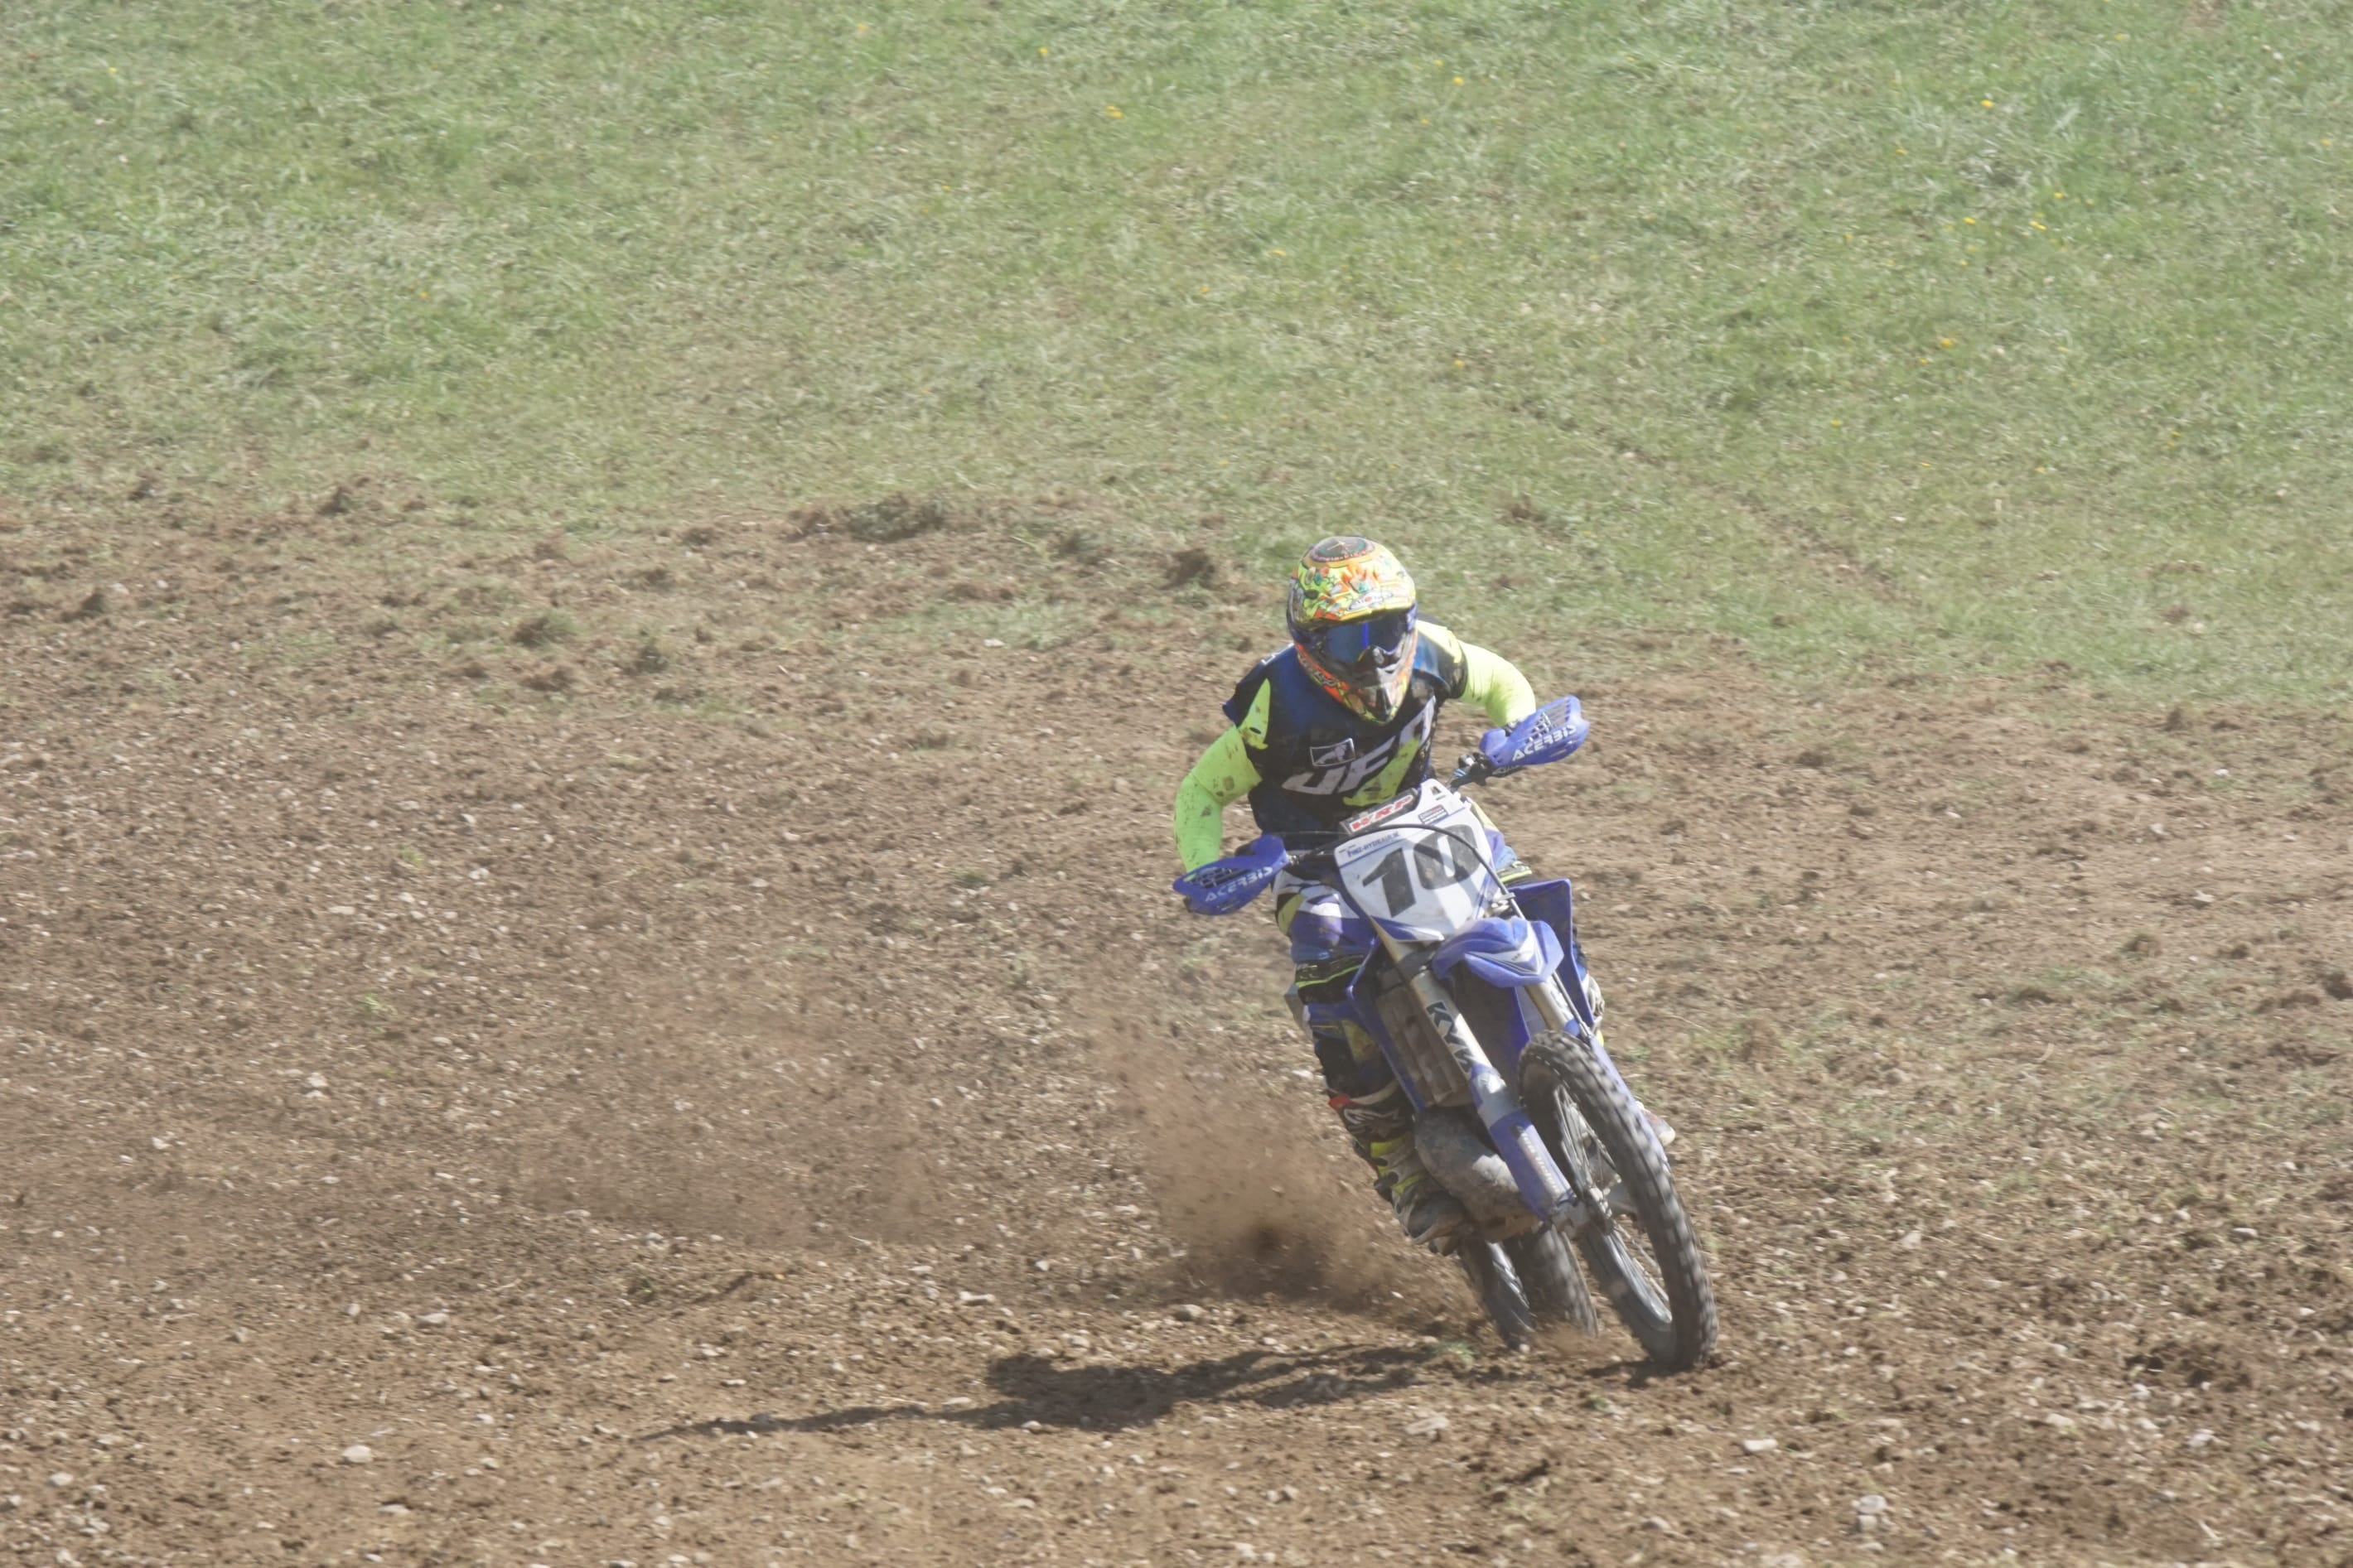 DSC 179_Moto Cross Sittendorf Teil1 am 29.04.2018